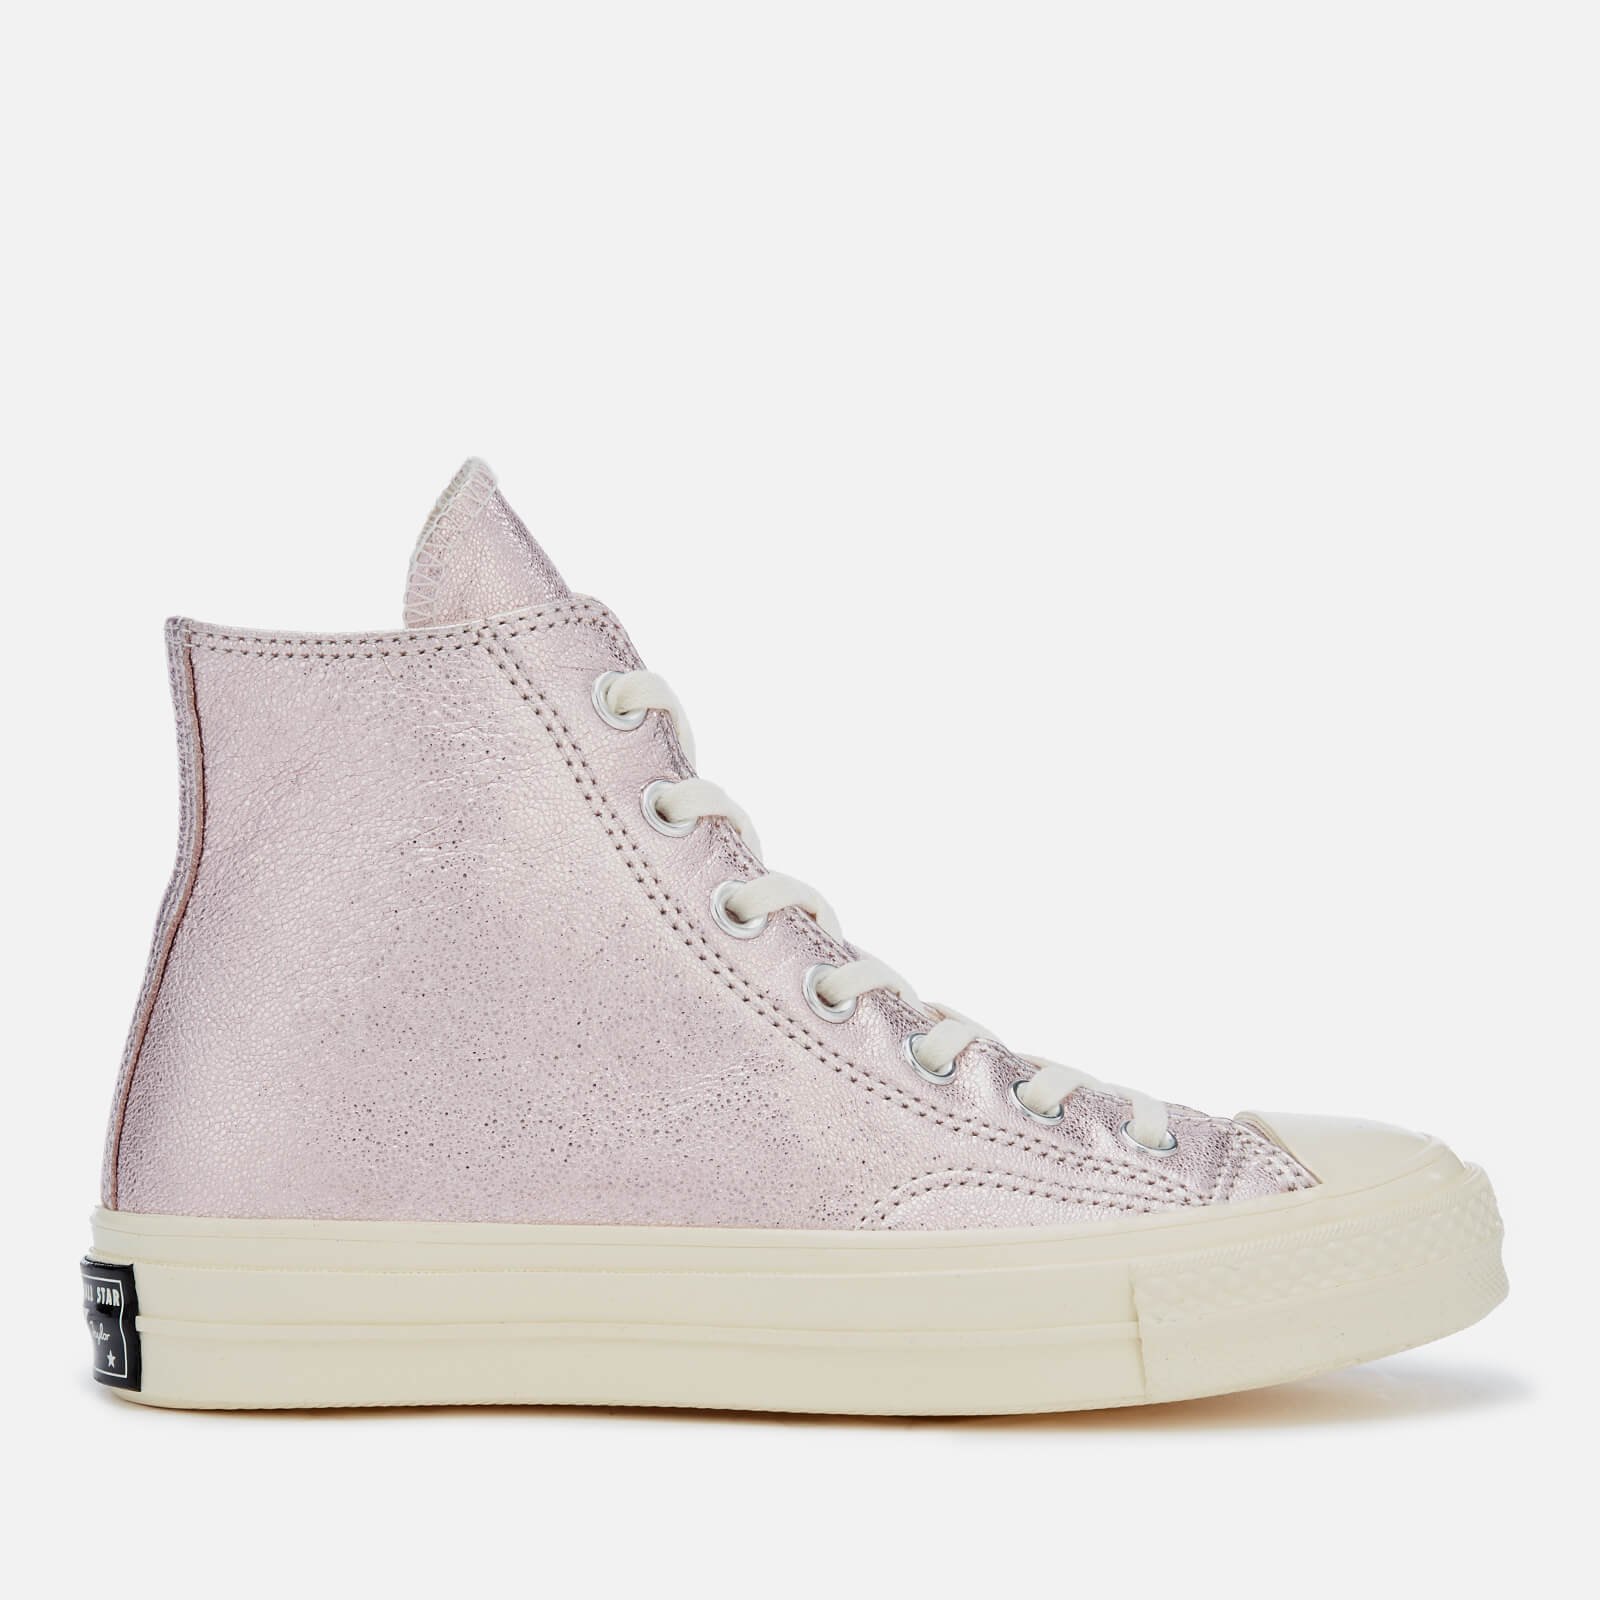 d209c2b15e40d2 Converse Women s Chuck Taylor All Star  70 Hi-Top Trainers - Rust  Pink Egret - Free UK Delivery over £50